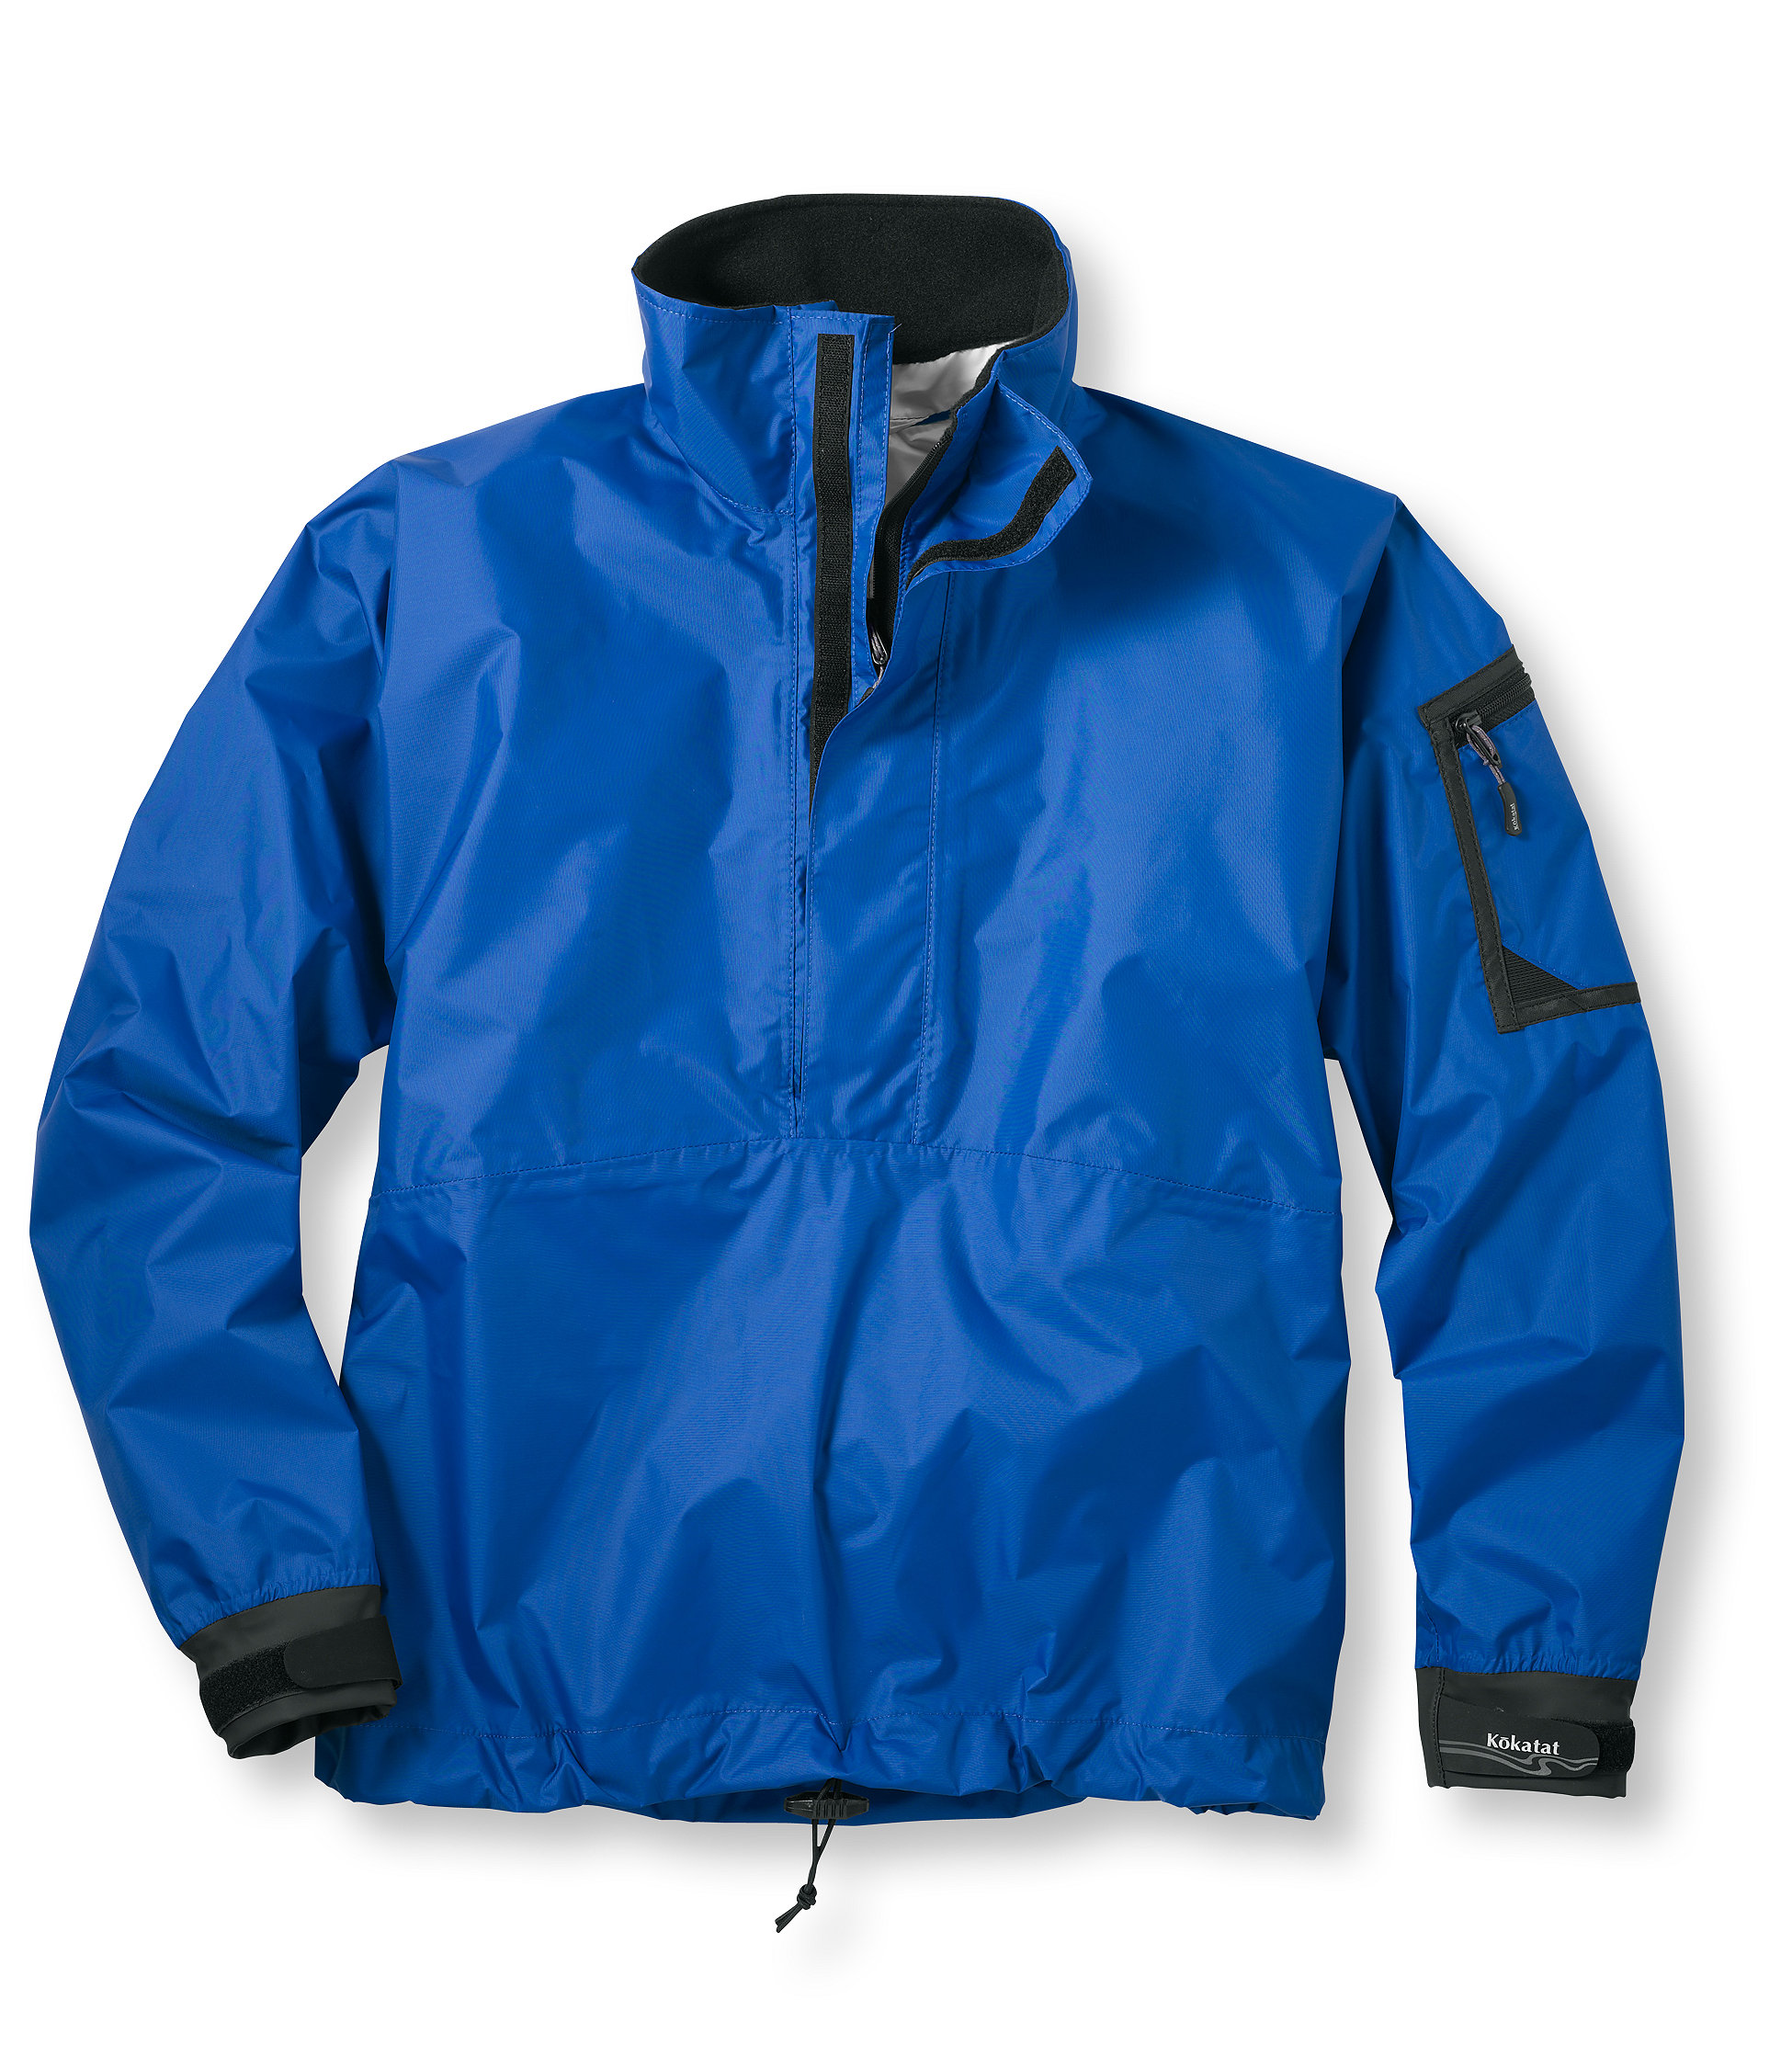 Kokatat Tropos Light Paddling Jacket